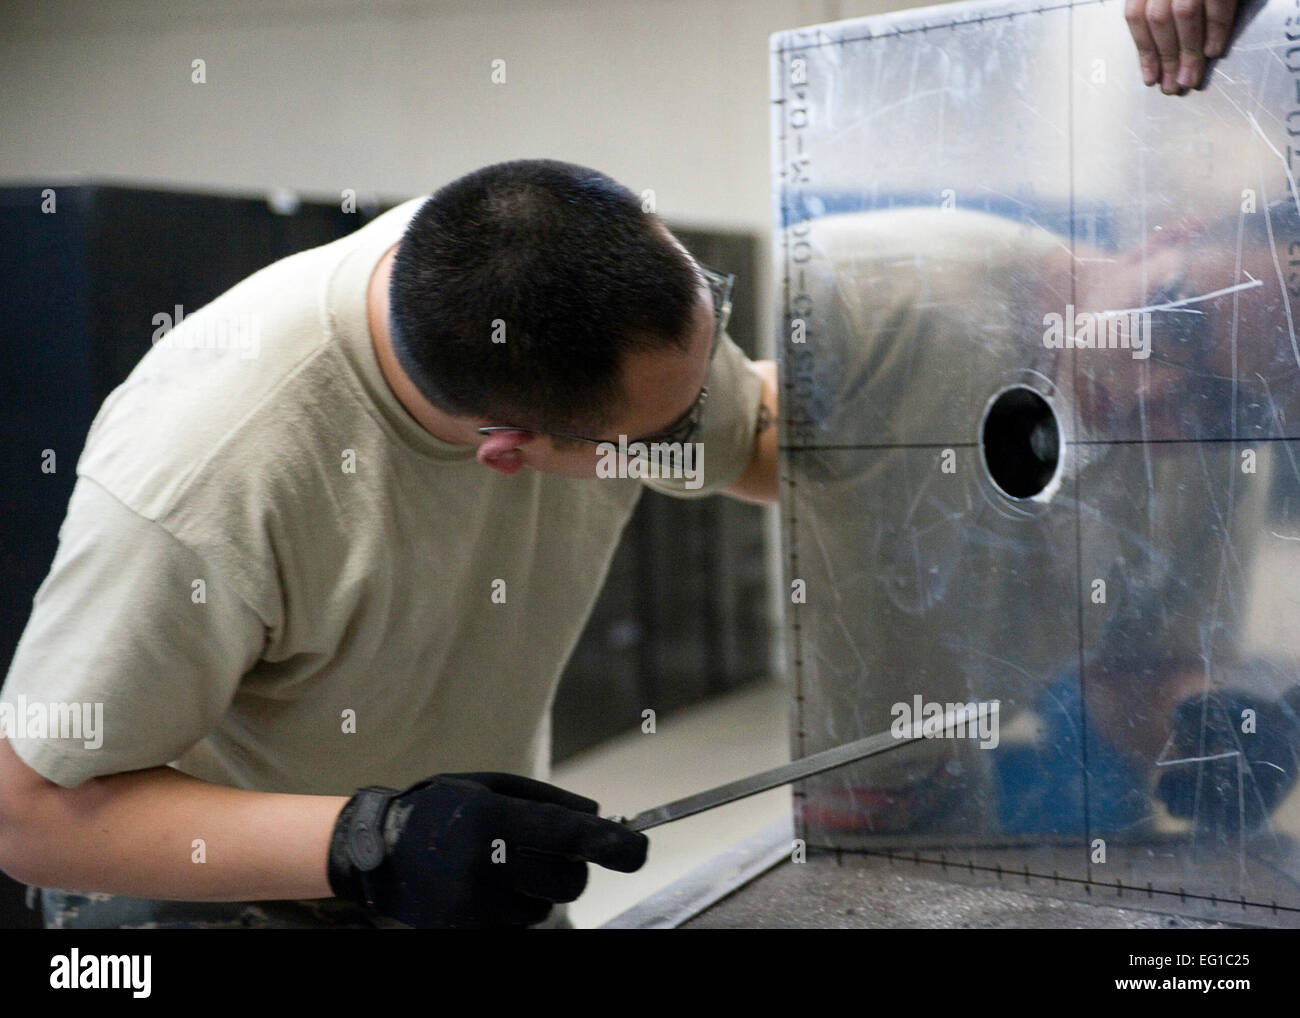 YOKOTA AIR BASE, Japan – Senior Airman Thompson Kongmany, 374th Maintenance Squadron metals technician, examines - Stock Image